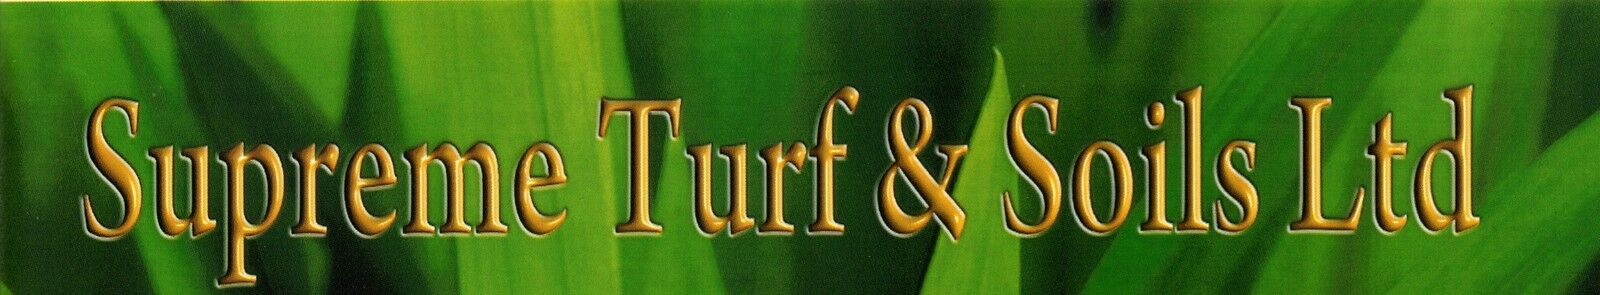 Supreme Turf & Soils Ltd.